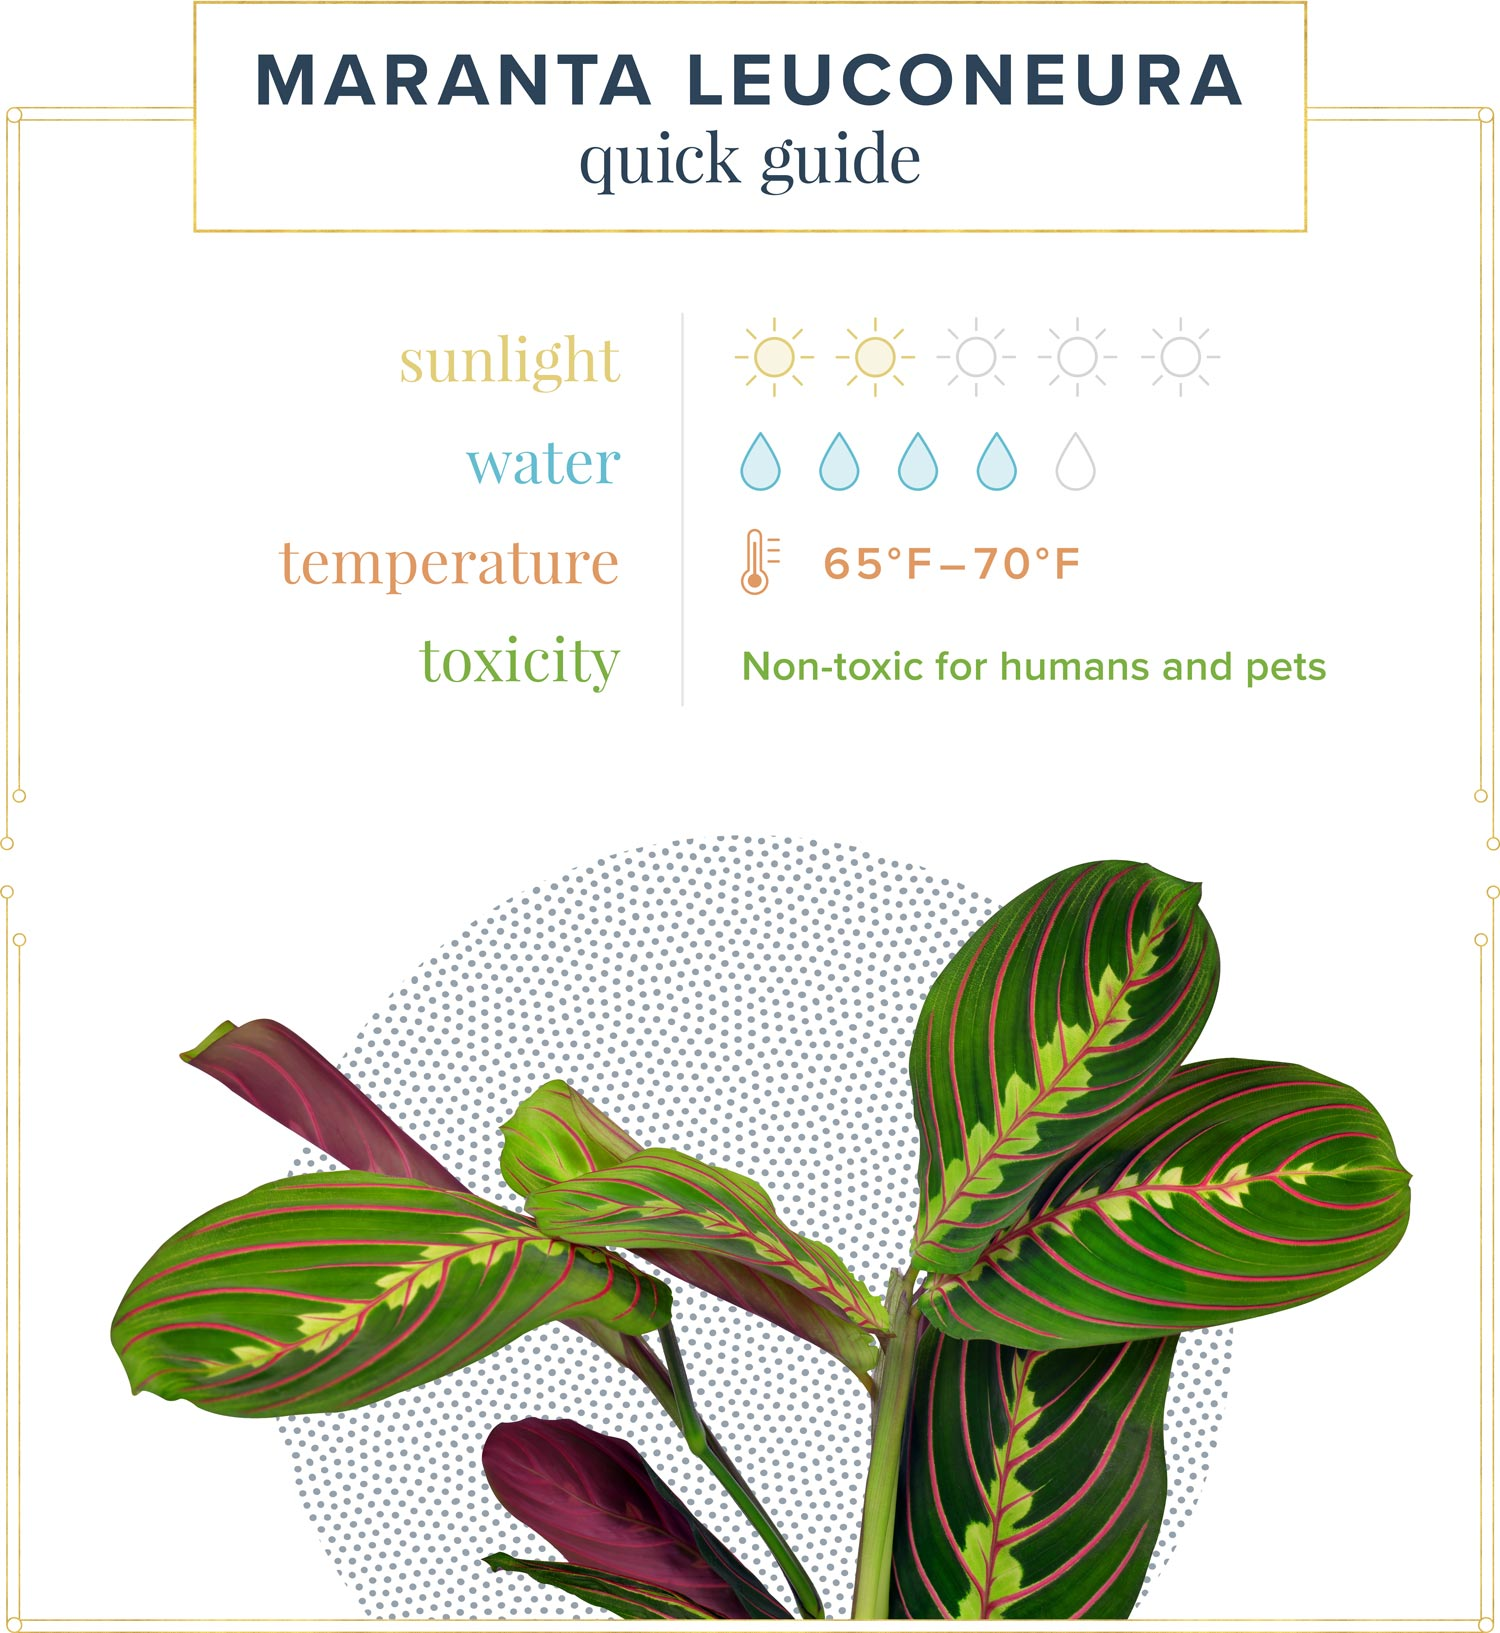 Maranta leuconeura quick guide. Sunlight: 2 out of 5 suns Water: 4 out of 5 water drops Temperature: 65 - 70ºF Toxicity: Non-toxic for humans and pets